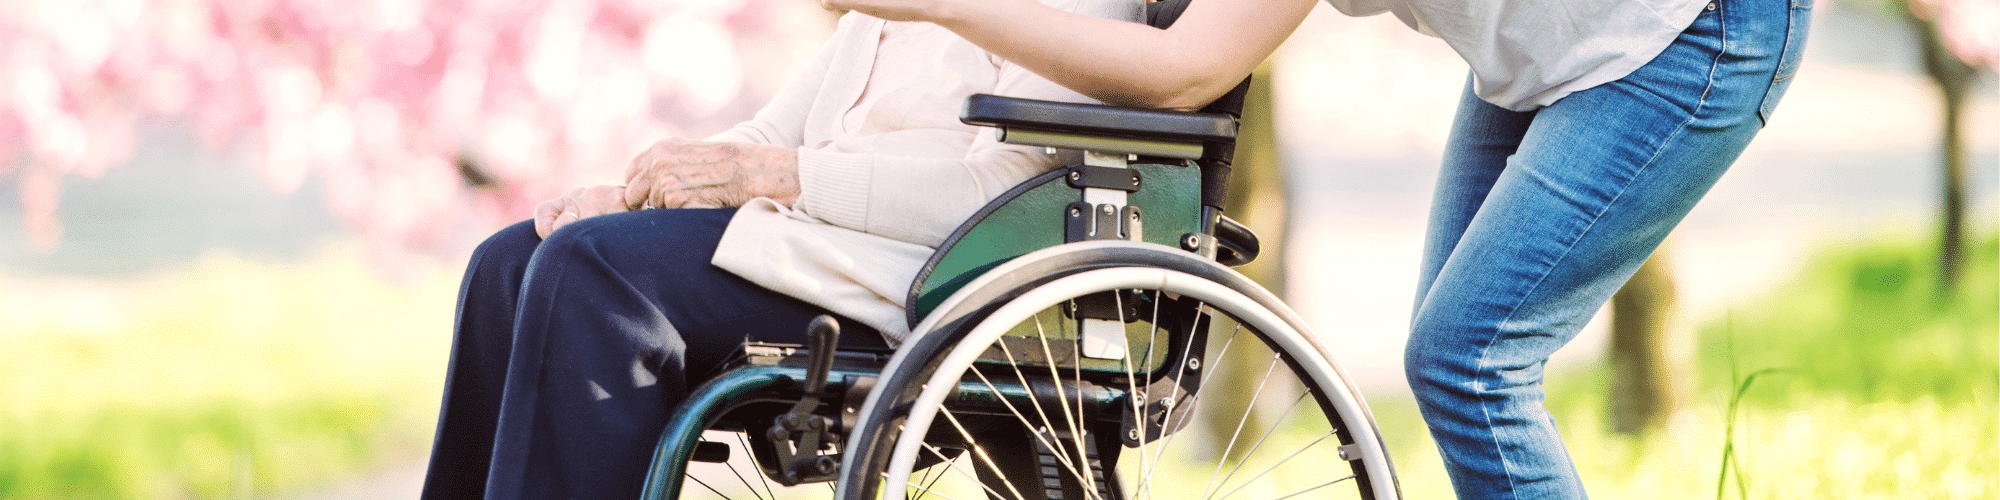 Home Care for people with disabilities